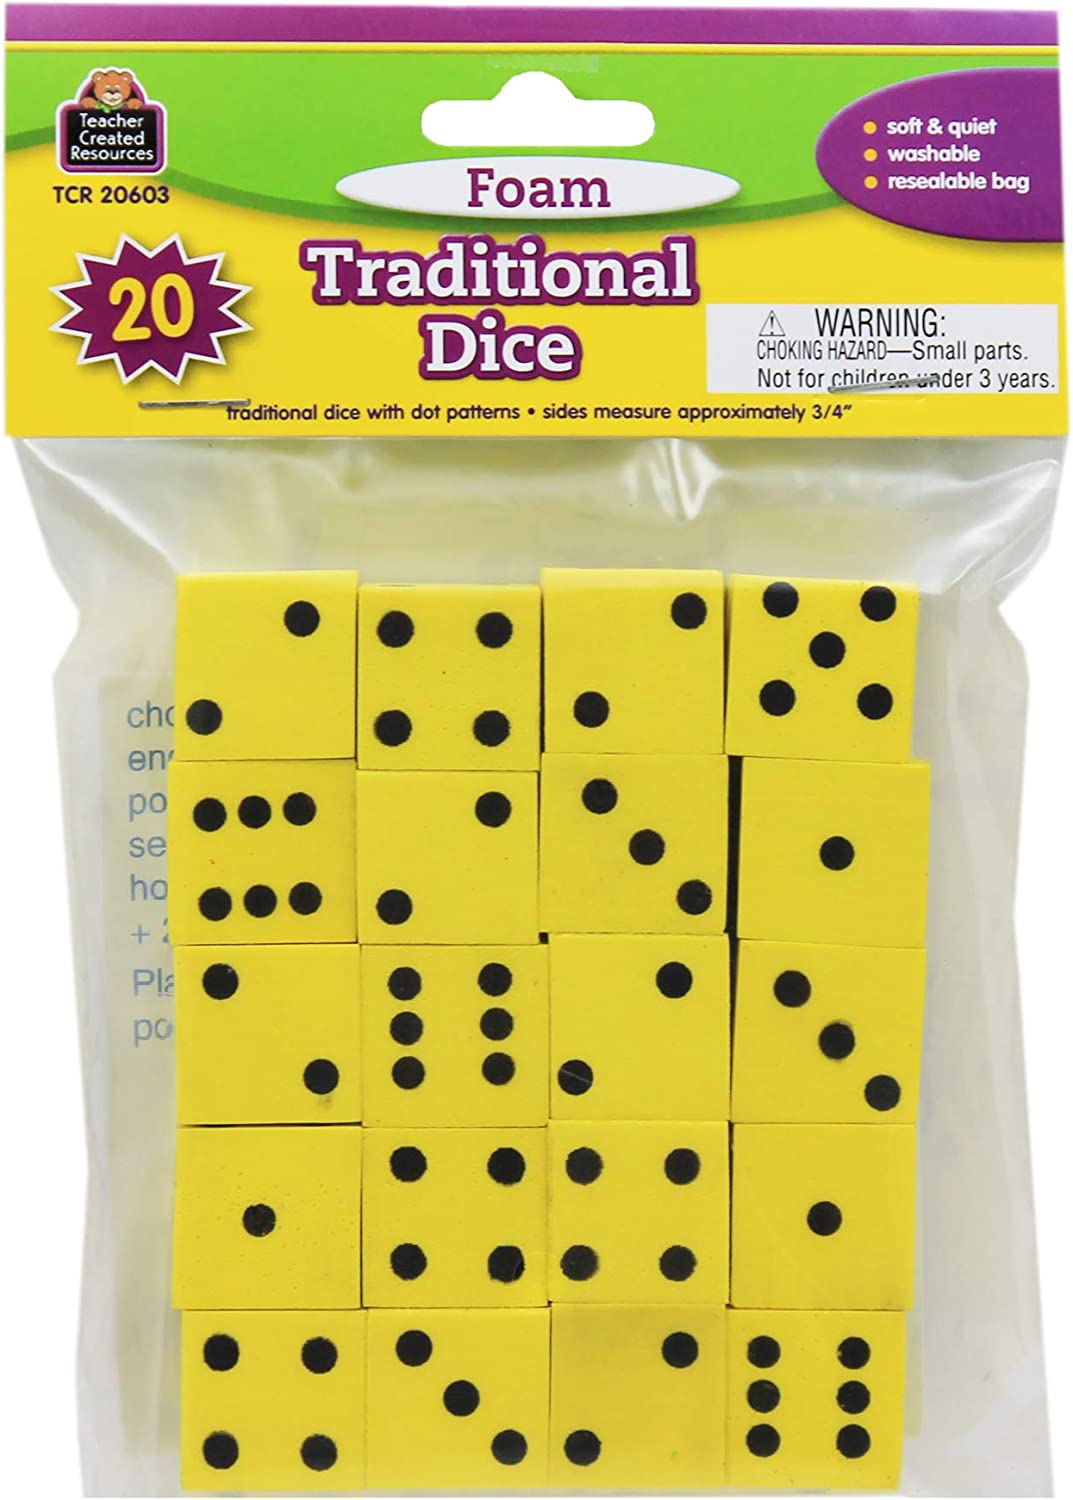 Teacher Created Resources Foam Traditional Dice (20603), Multi